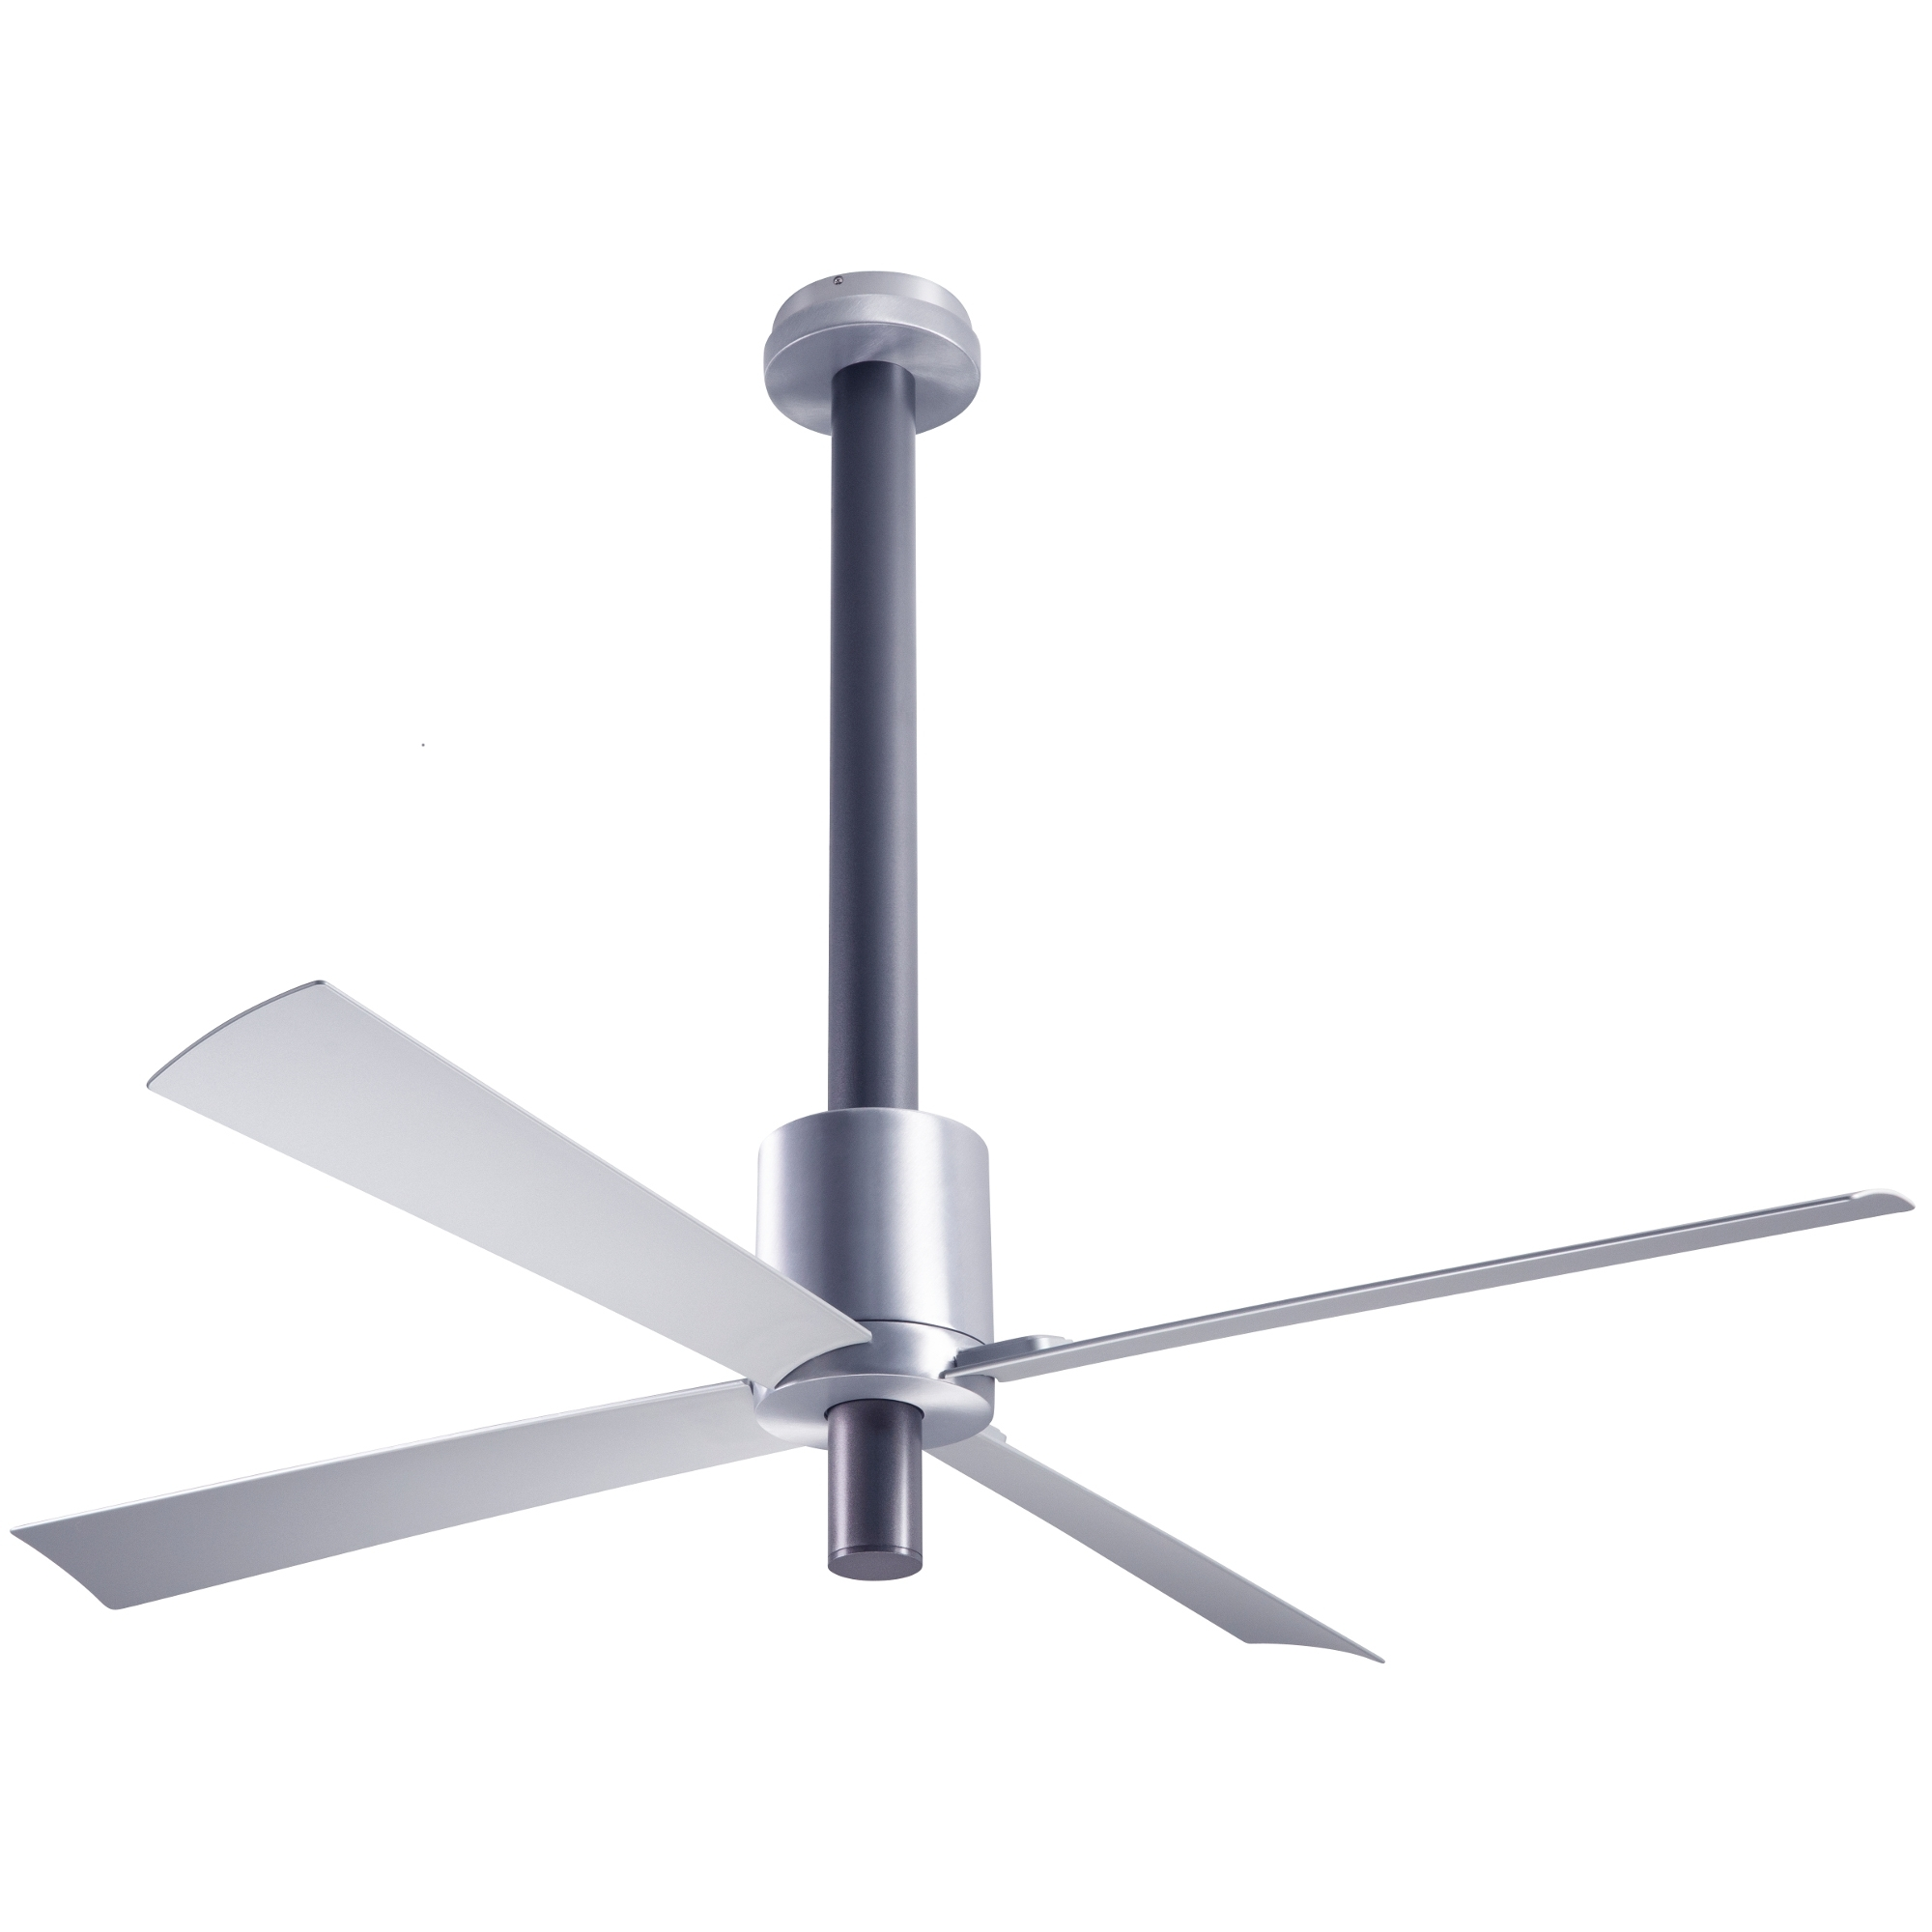 Modern Outdoor Ceiling Fans For Well Known Pensi Outdoor Ceiling Fanmodern Fan Co (View 16 of 20)